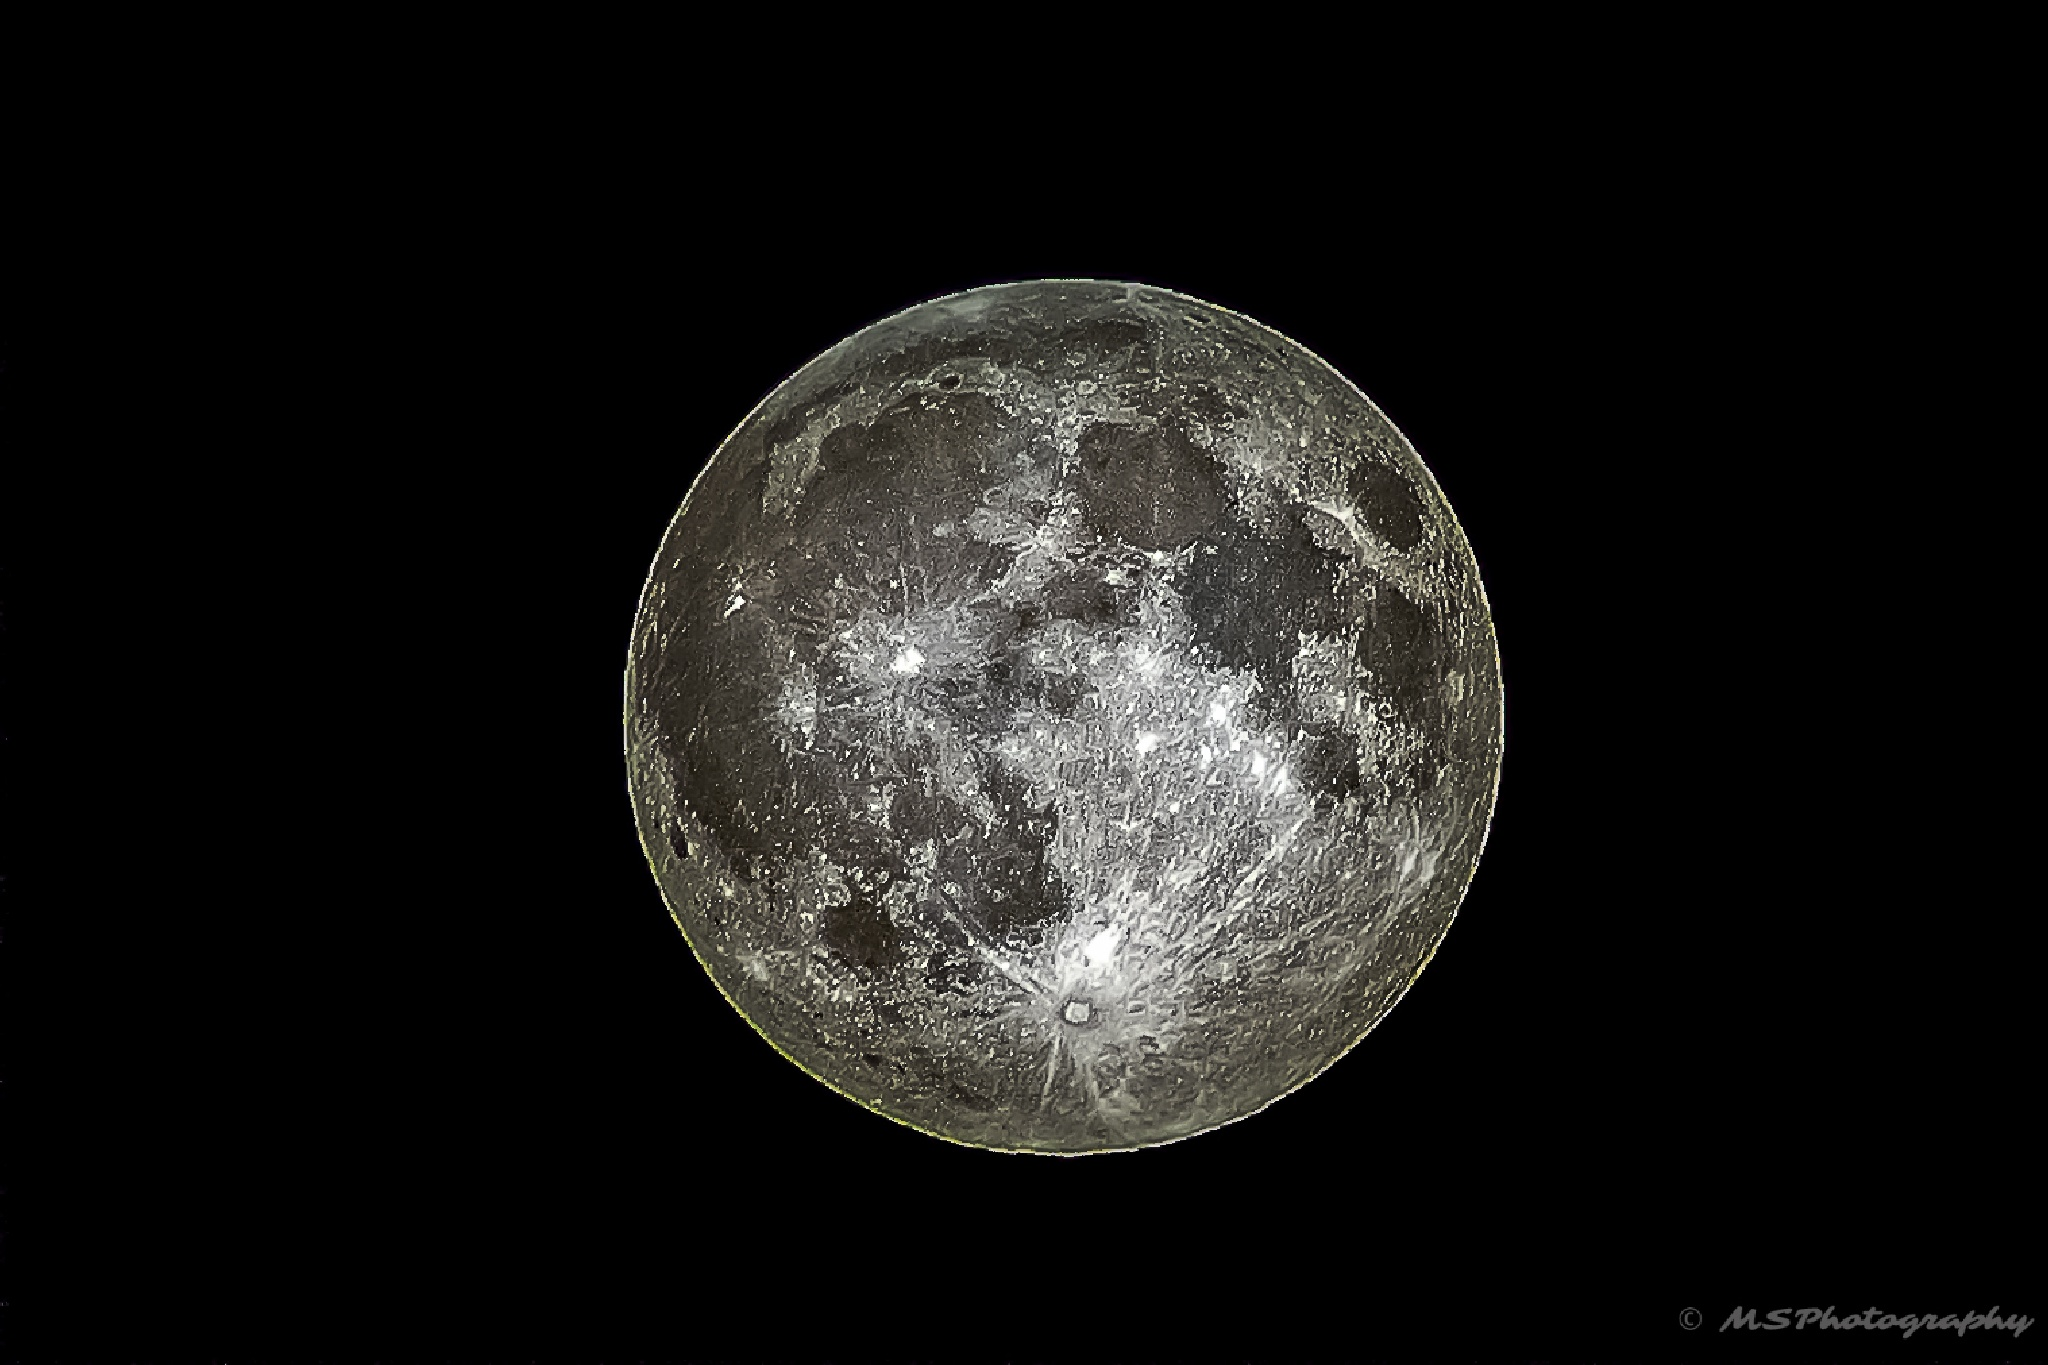 Full Moon by Martin Schunack